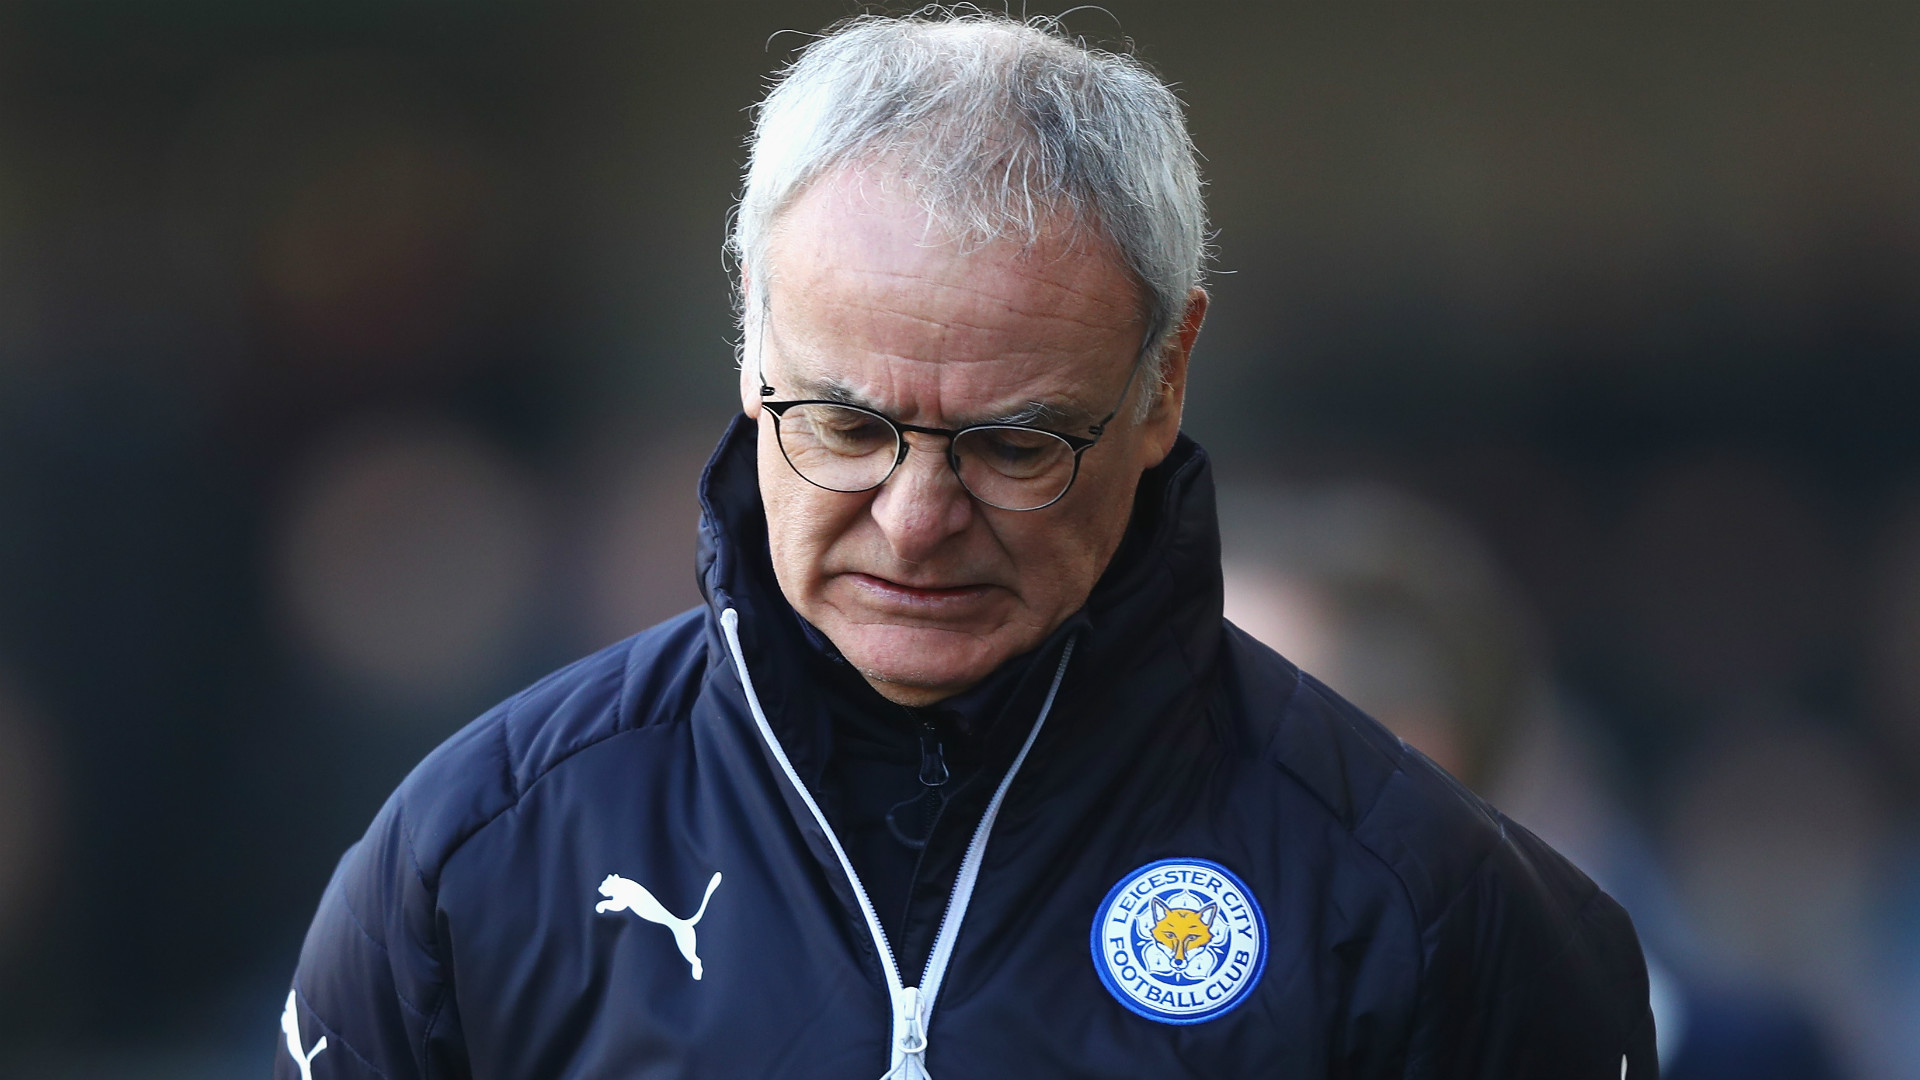 'My dream died' - Ranieri speaks for first time after Leicester sacking